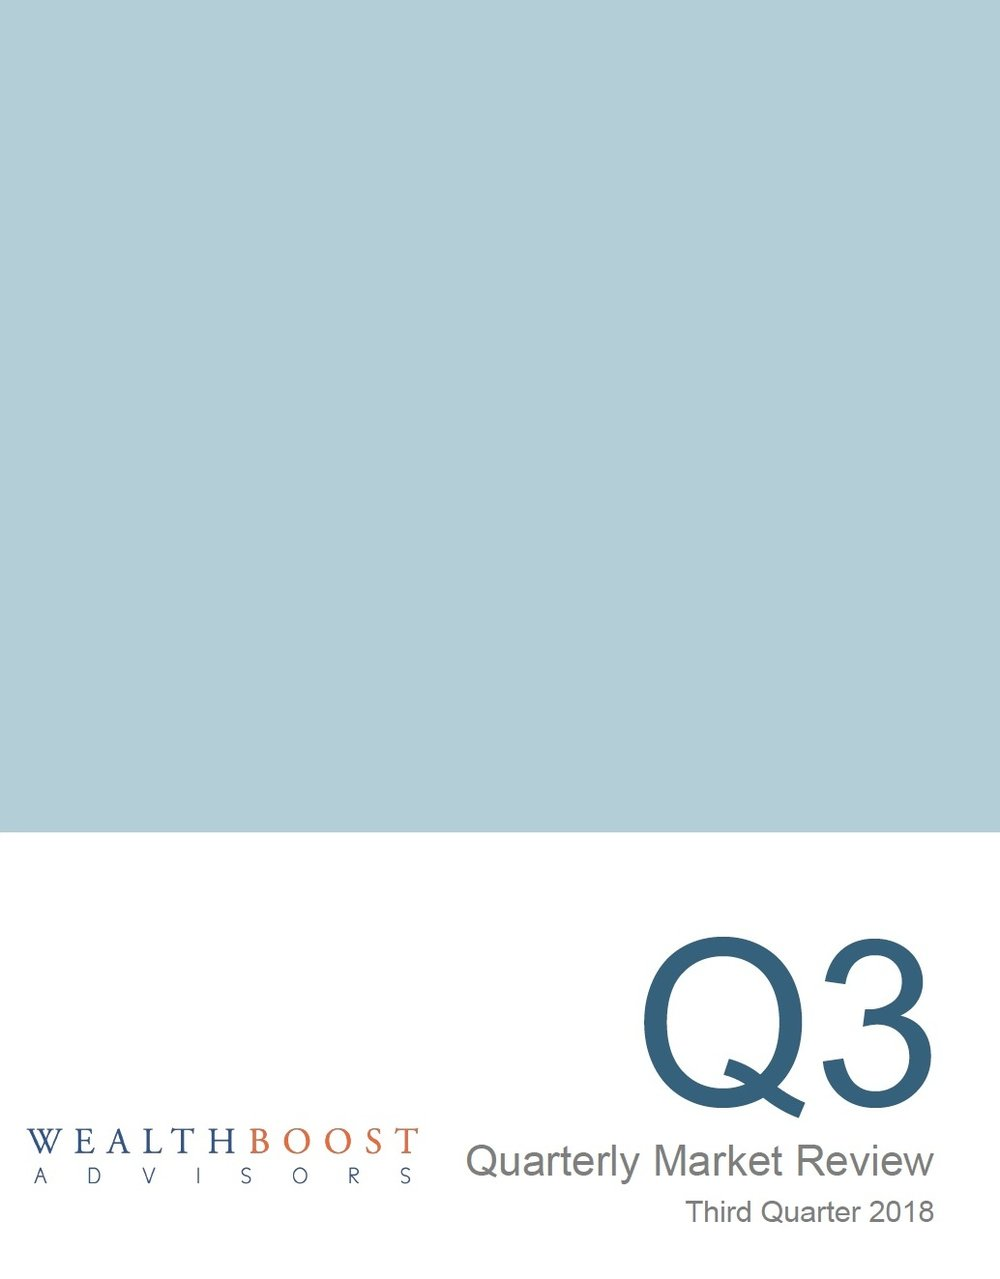 2018 Q3 Quarterly Market Review .jpg